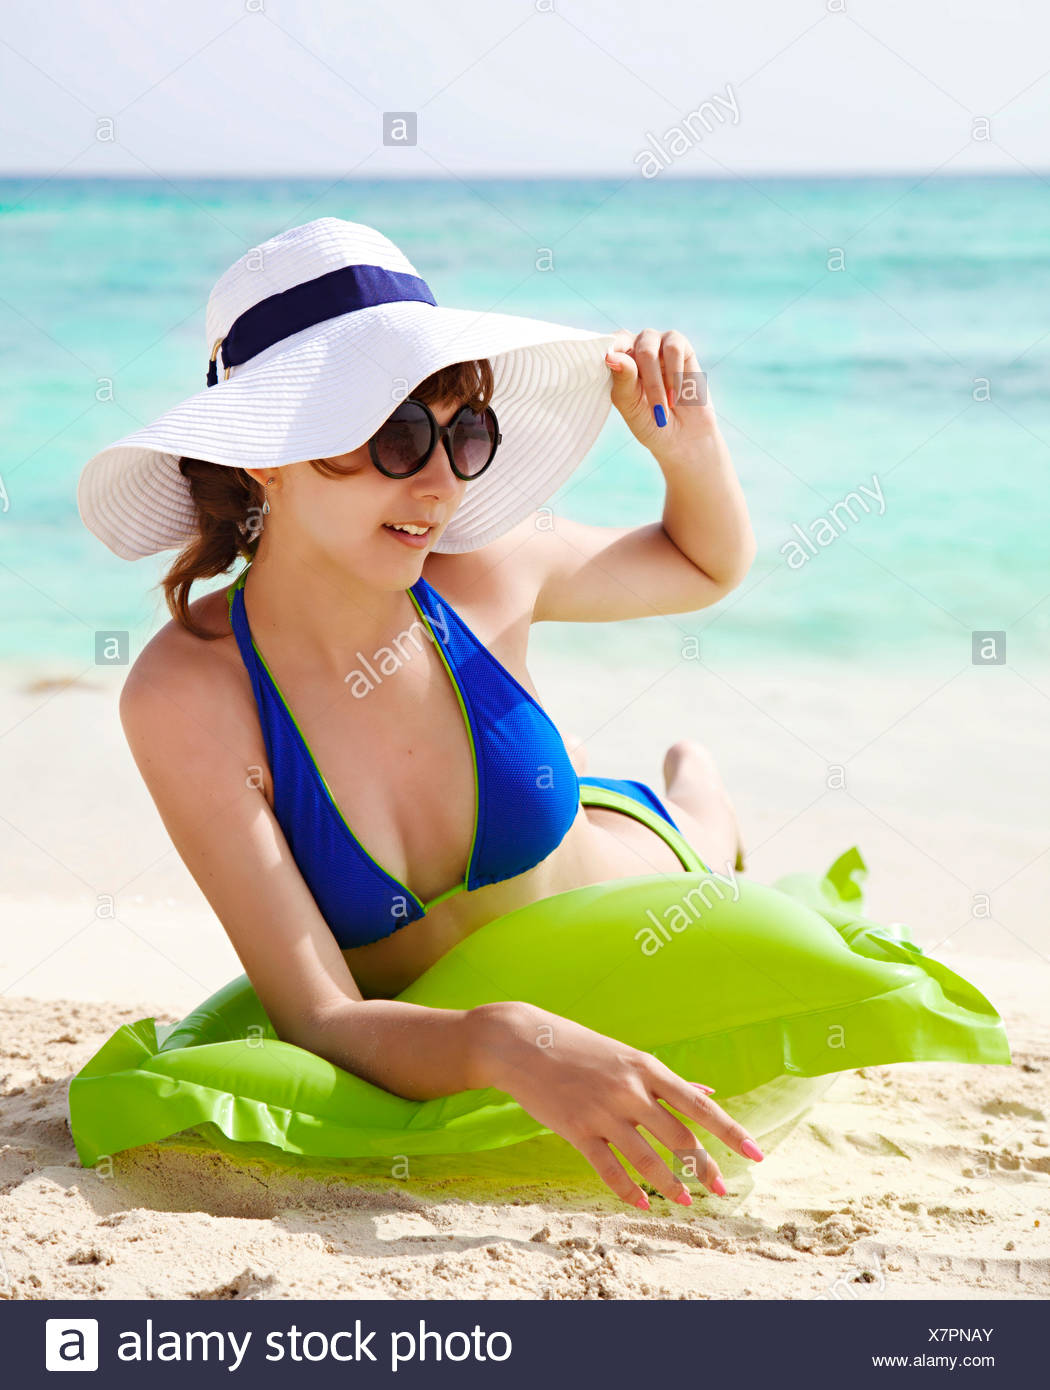 Teenage girl in a bikini sunbathing on the beach - Stock Image